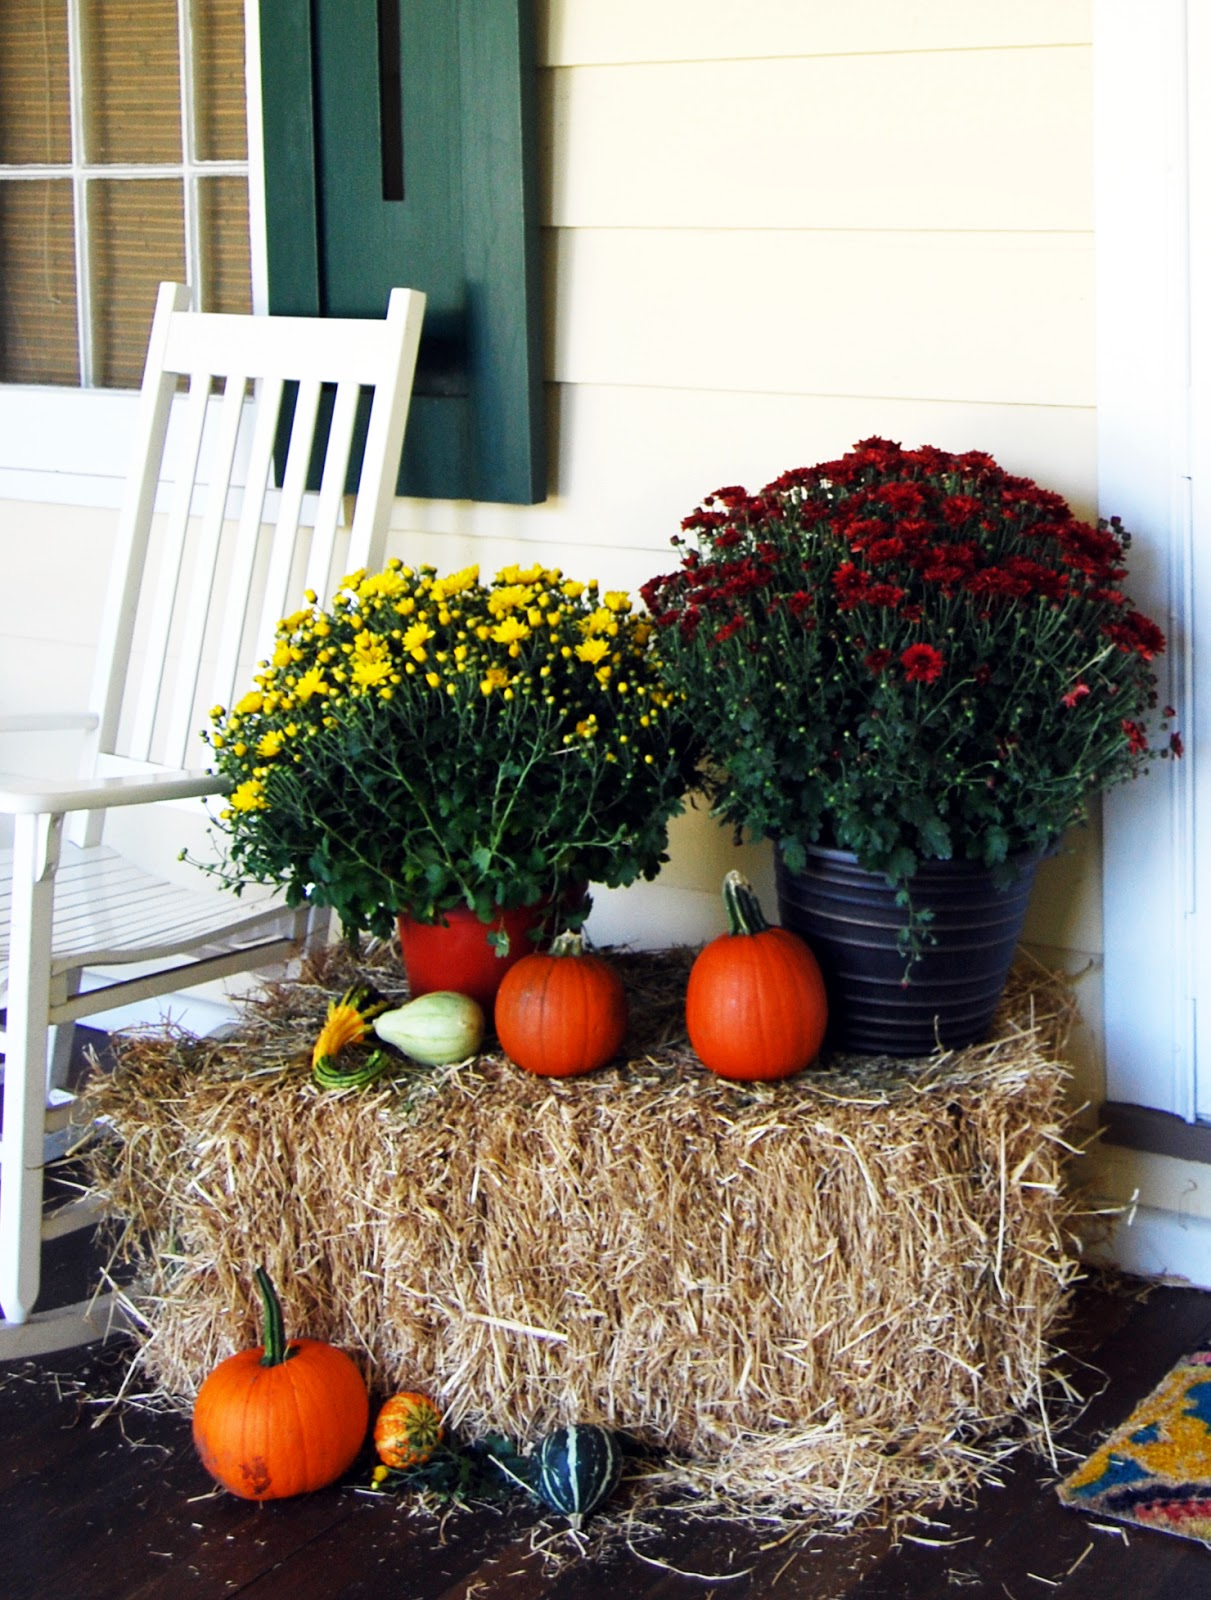 Fall Decorating Ideas for Outside | Schulman Art on Fall Backyard Decorating Ideas id=45841